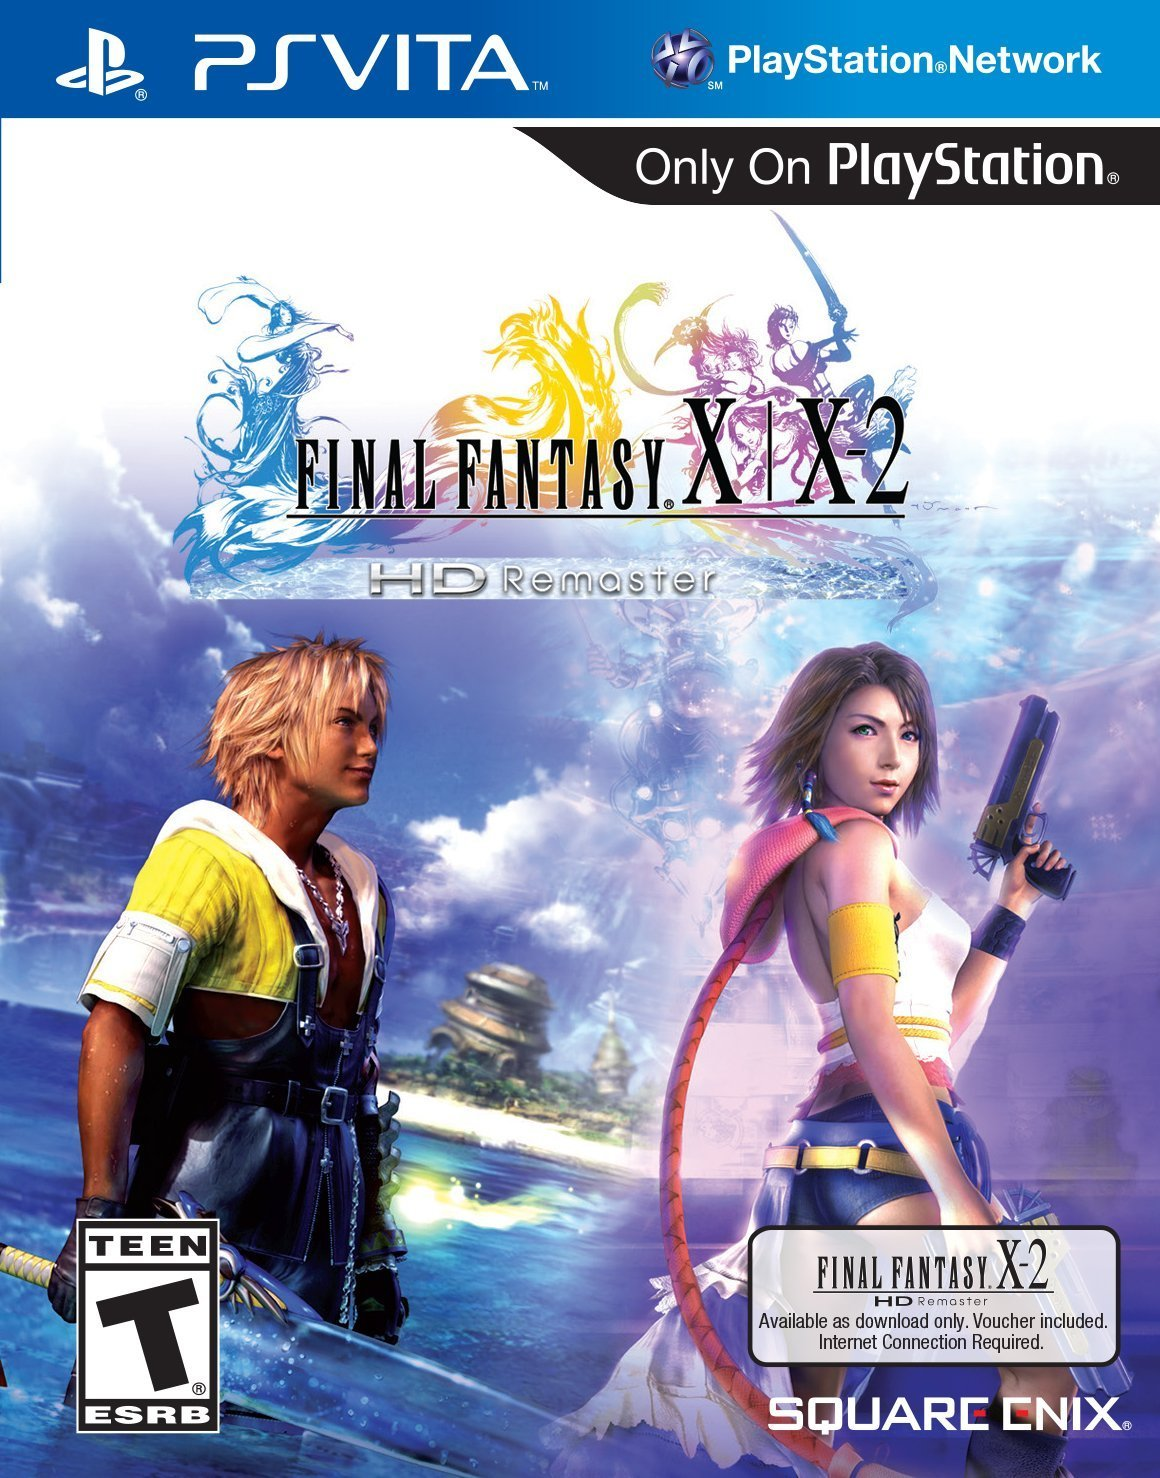 FINAL FANTASY X|X-2 HD Remaster - PlayStation Vita by Square Enix (Image #1)